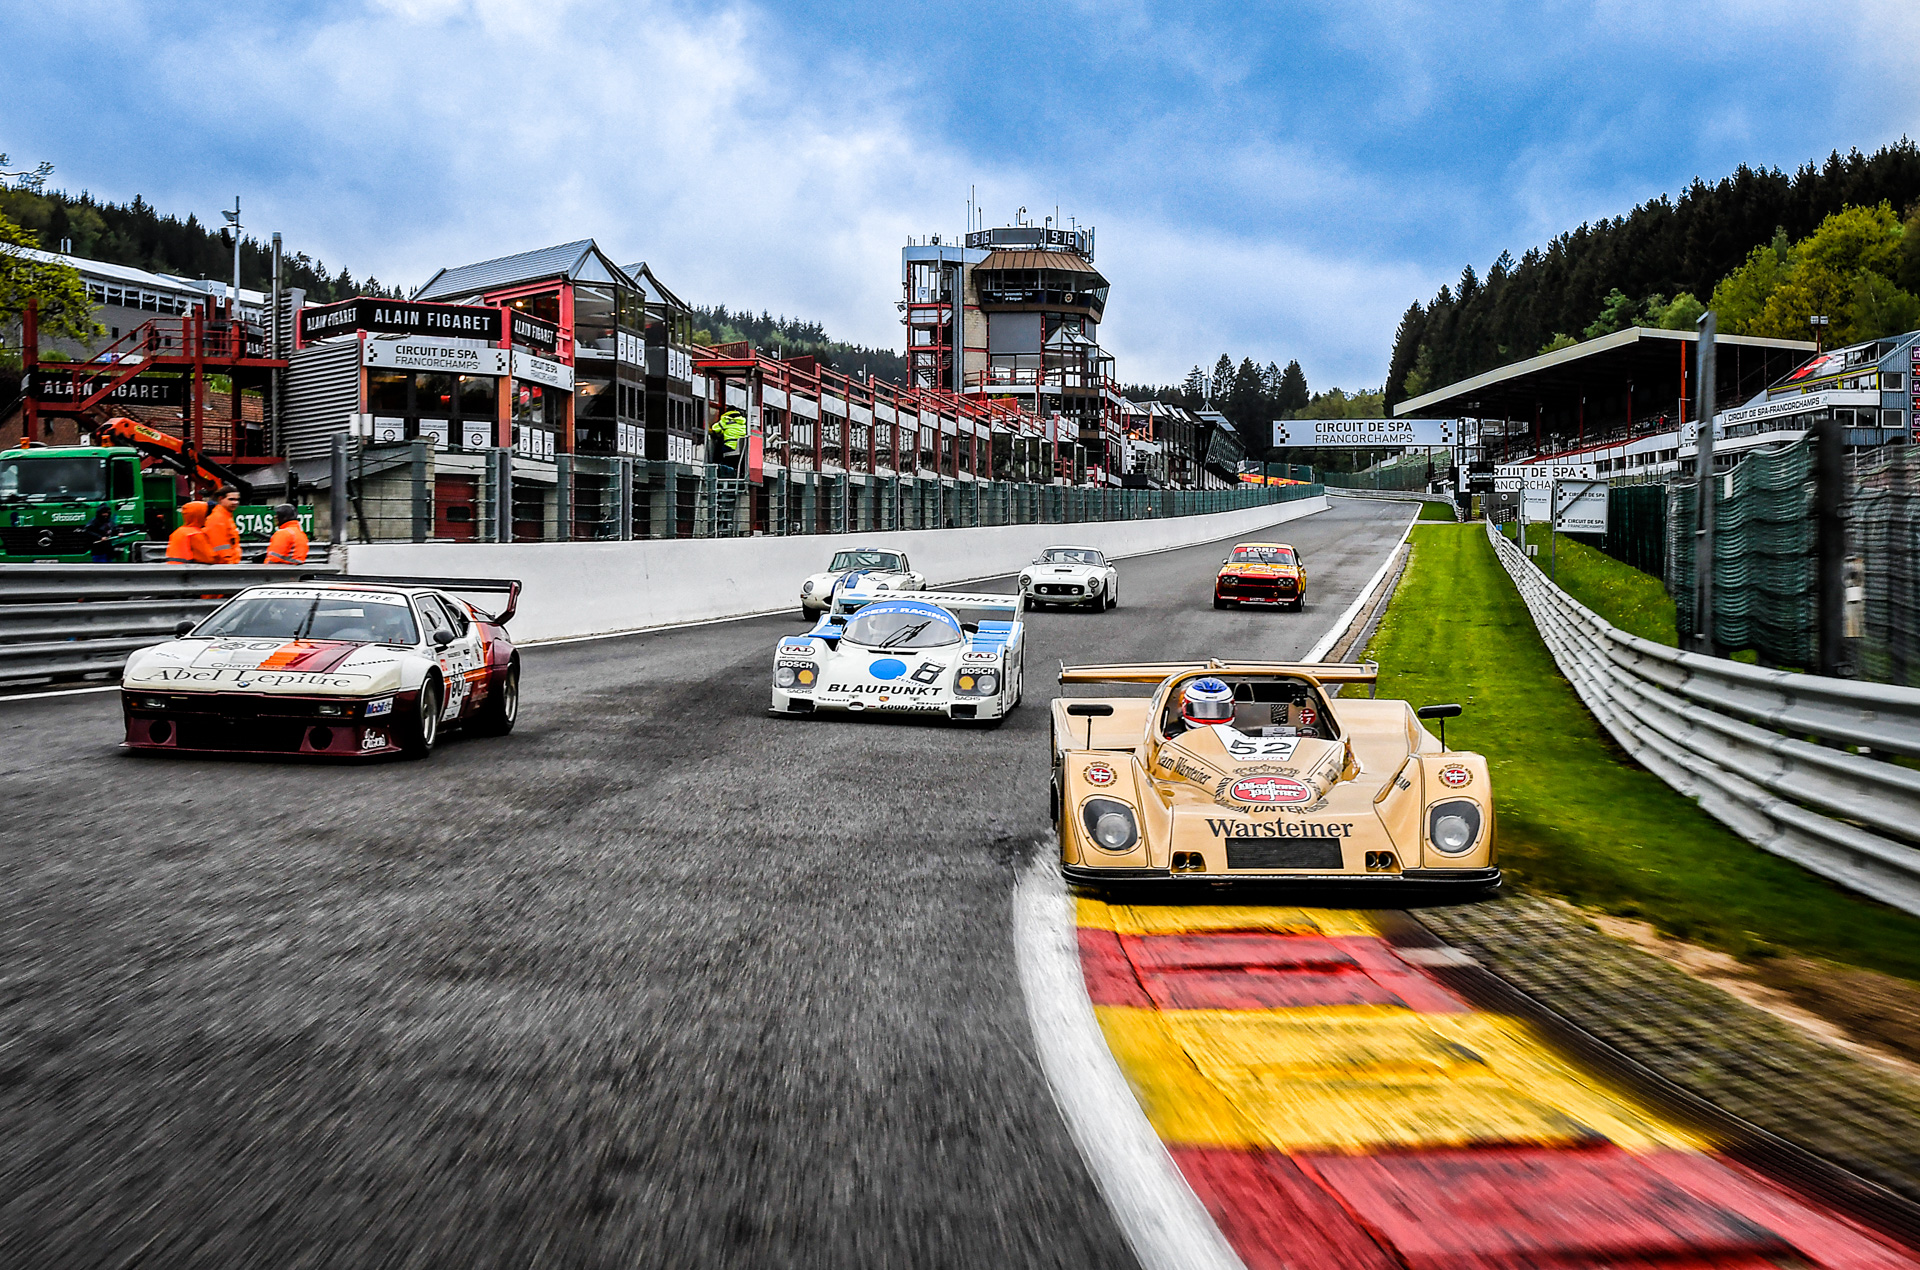 Spa-Francorchamps weekend